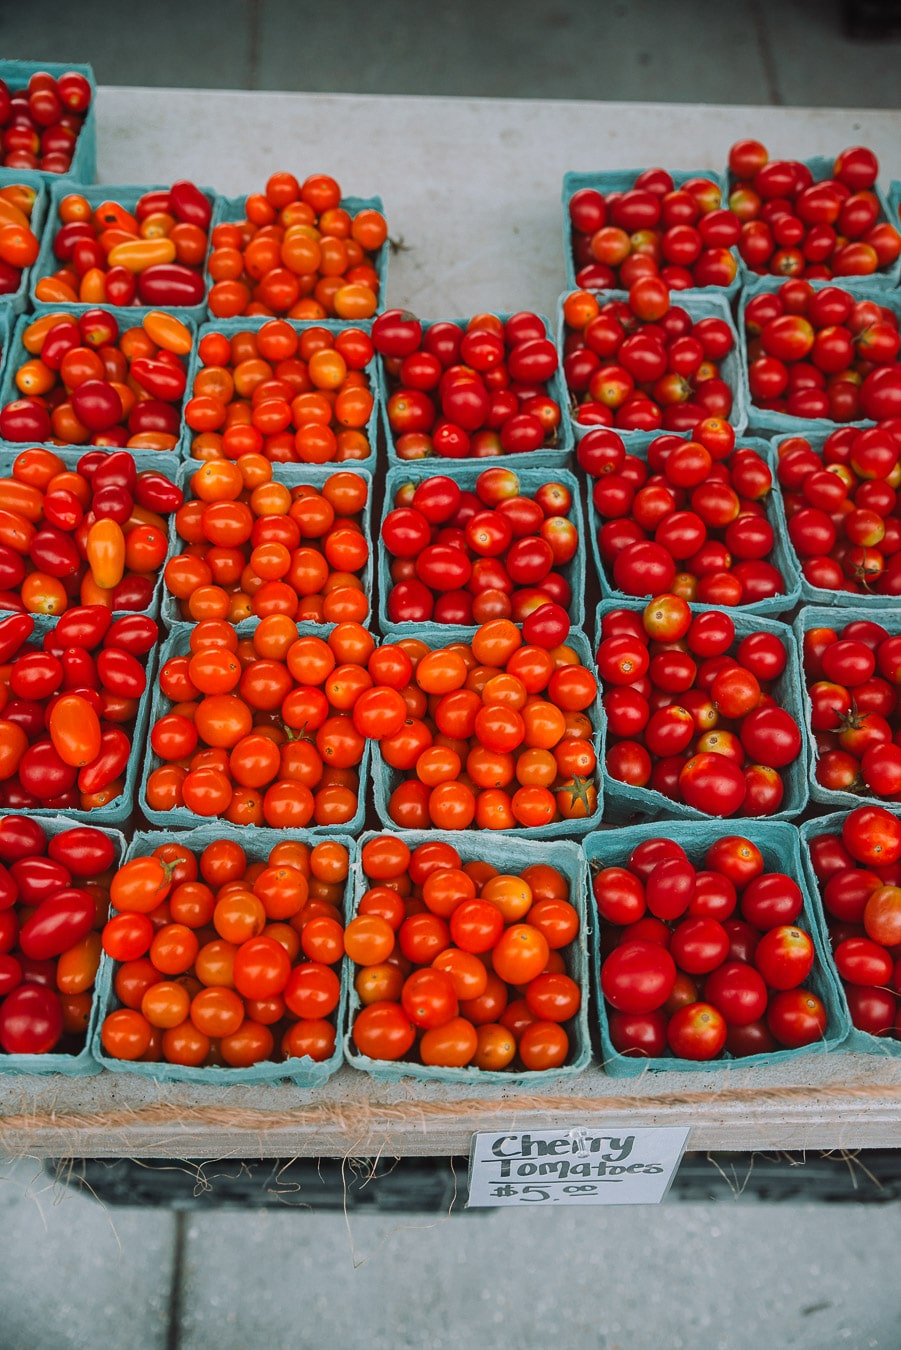 Cherry tomatoes on display at the farmers market